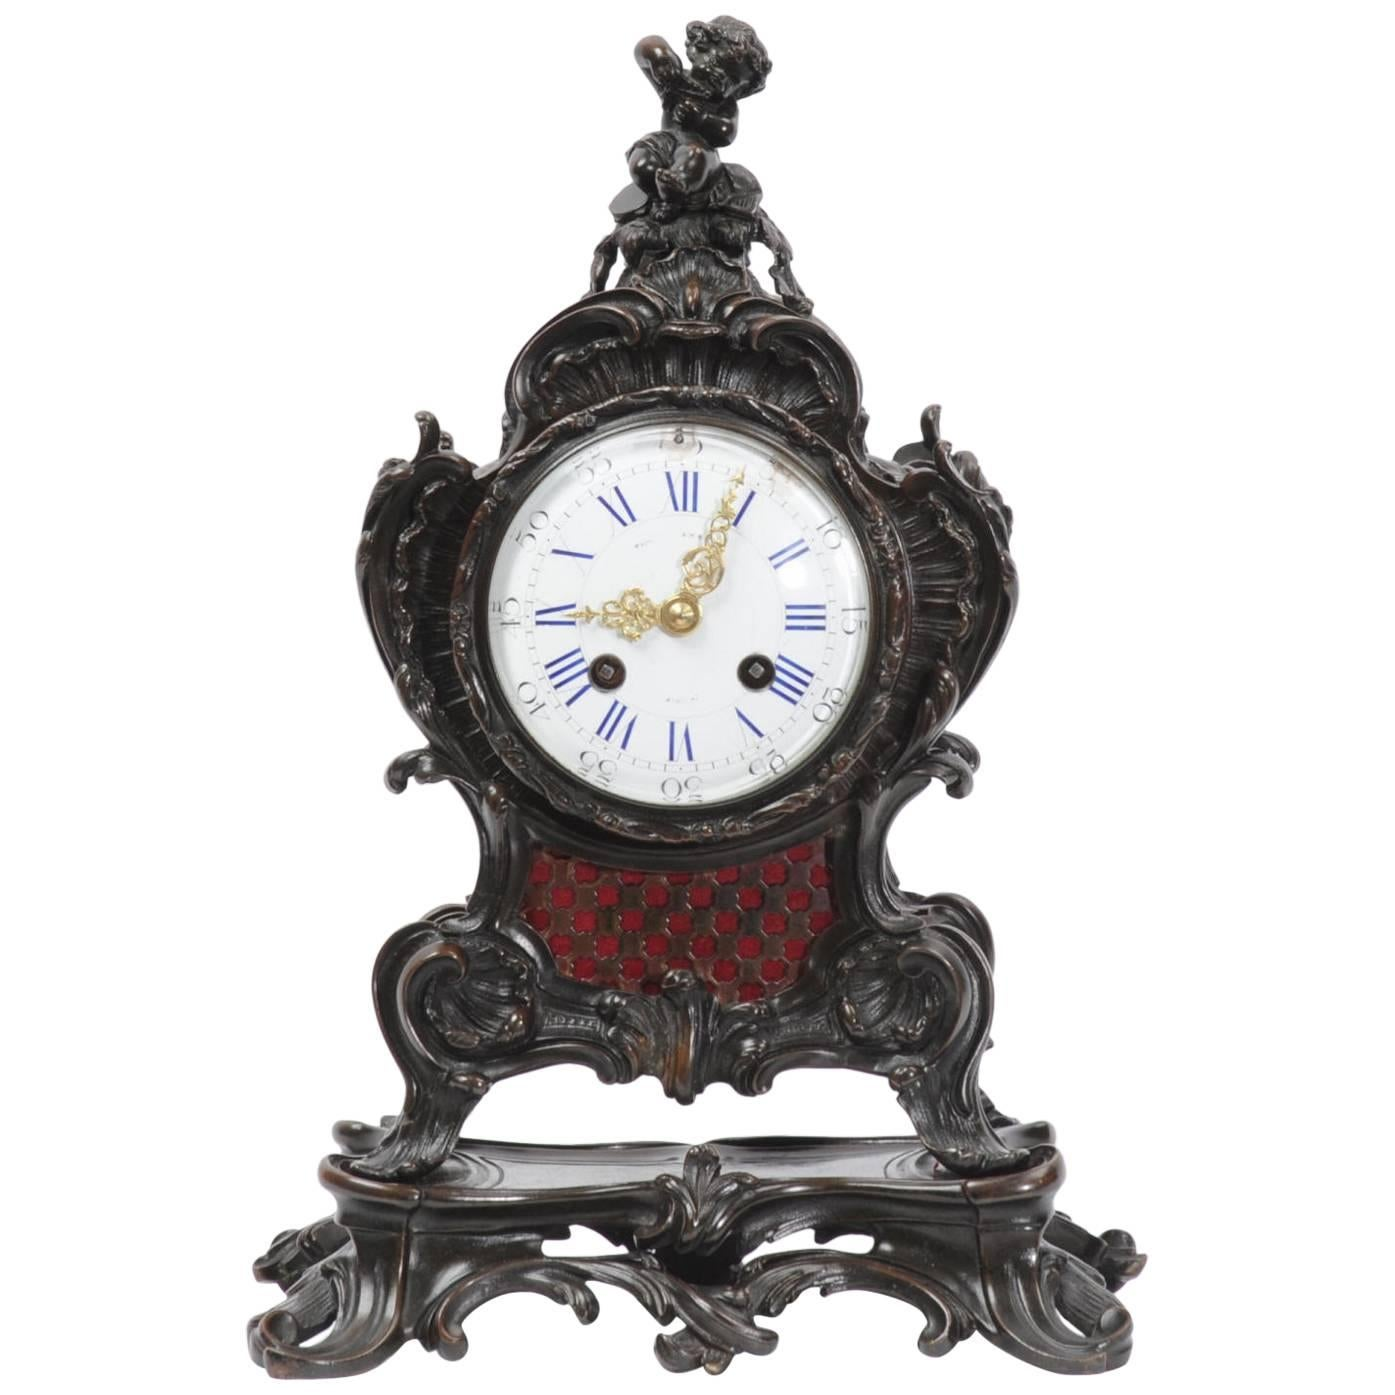 Japy freres clock dating services